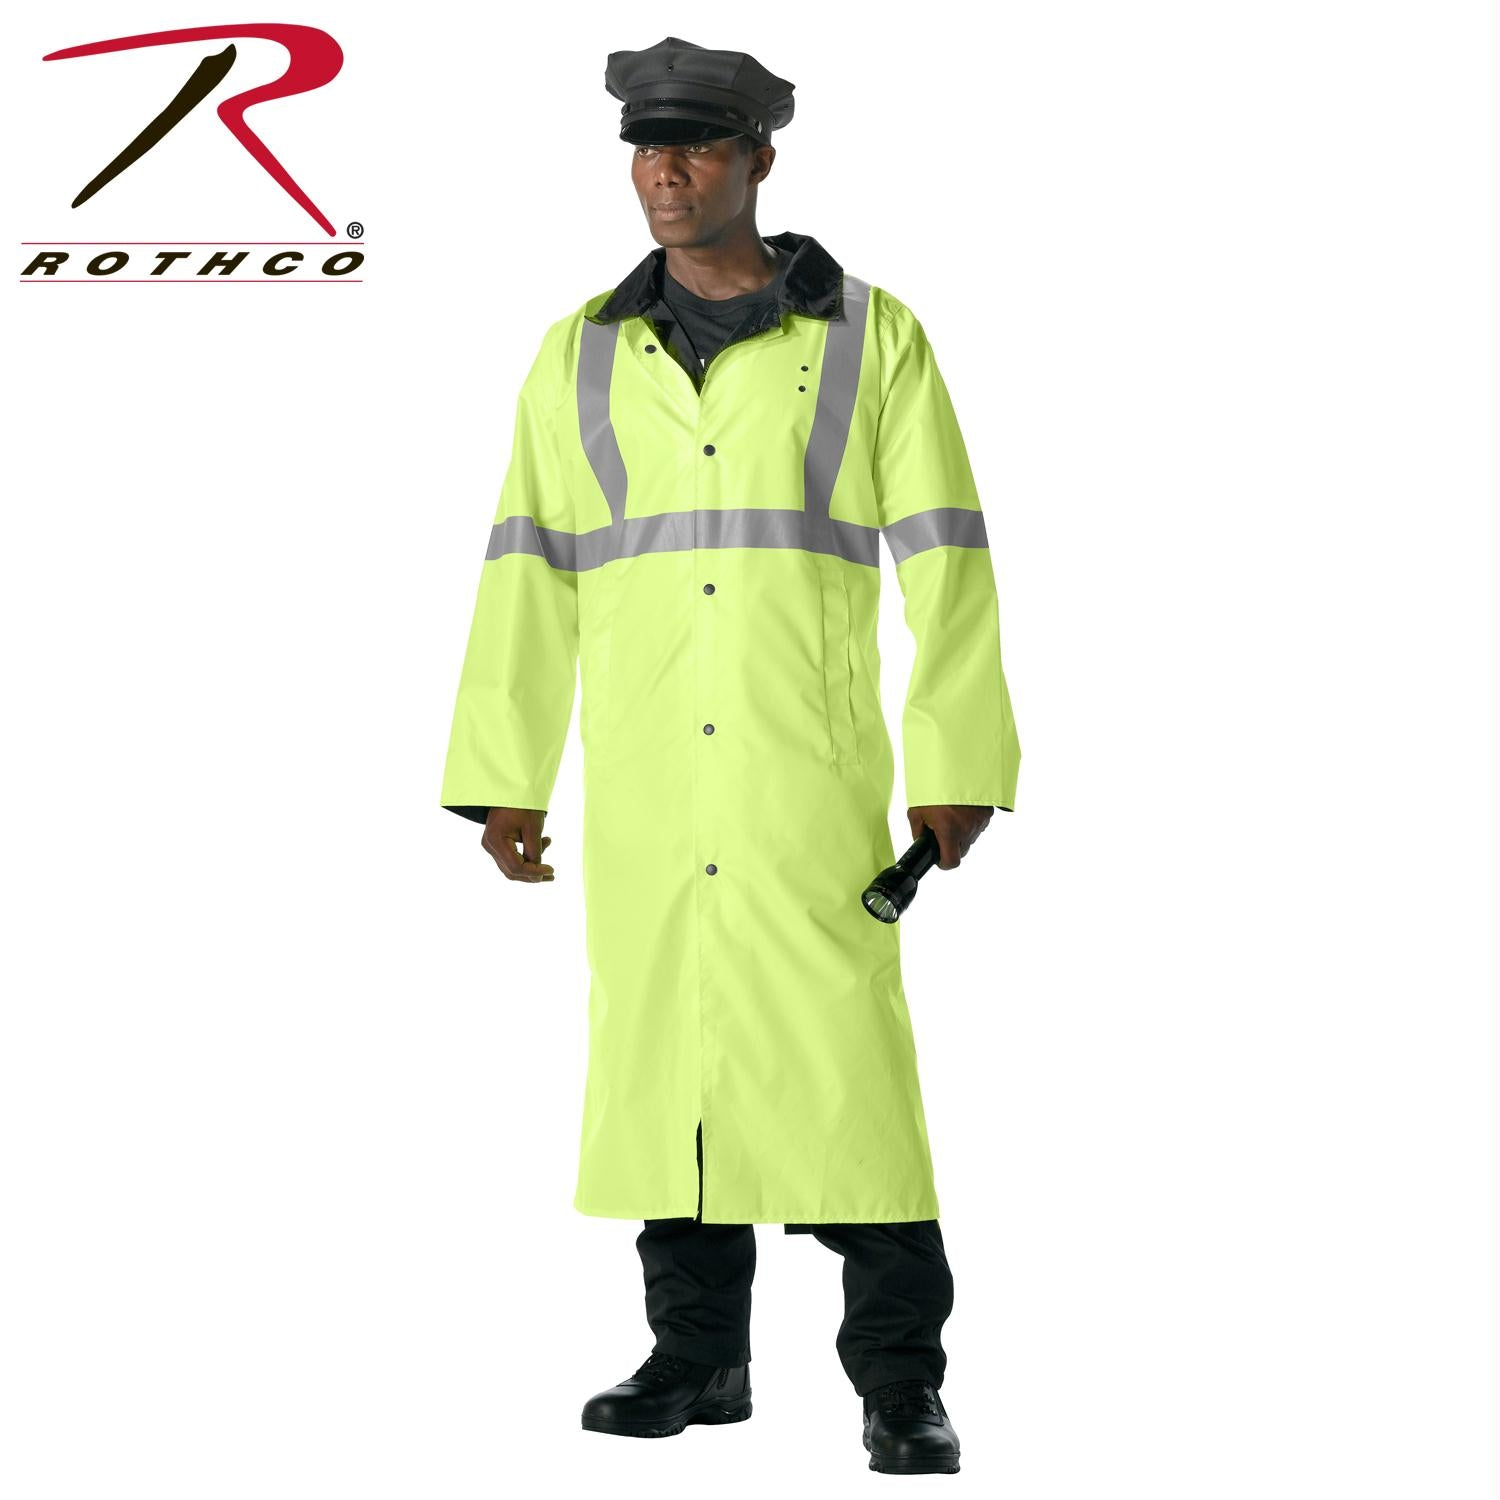 Rothco Reversible Reflective Rain Parka - Safety Green / 3XL